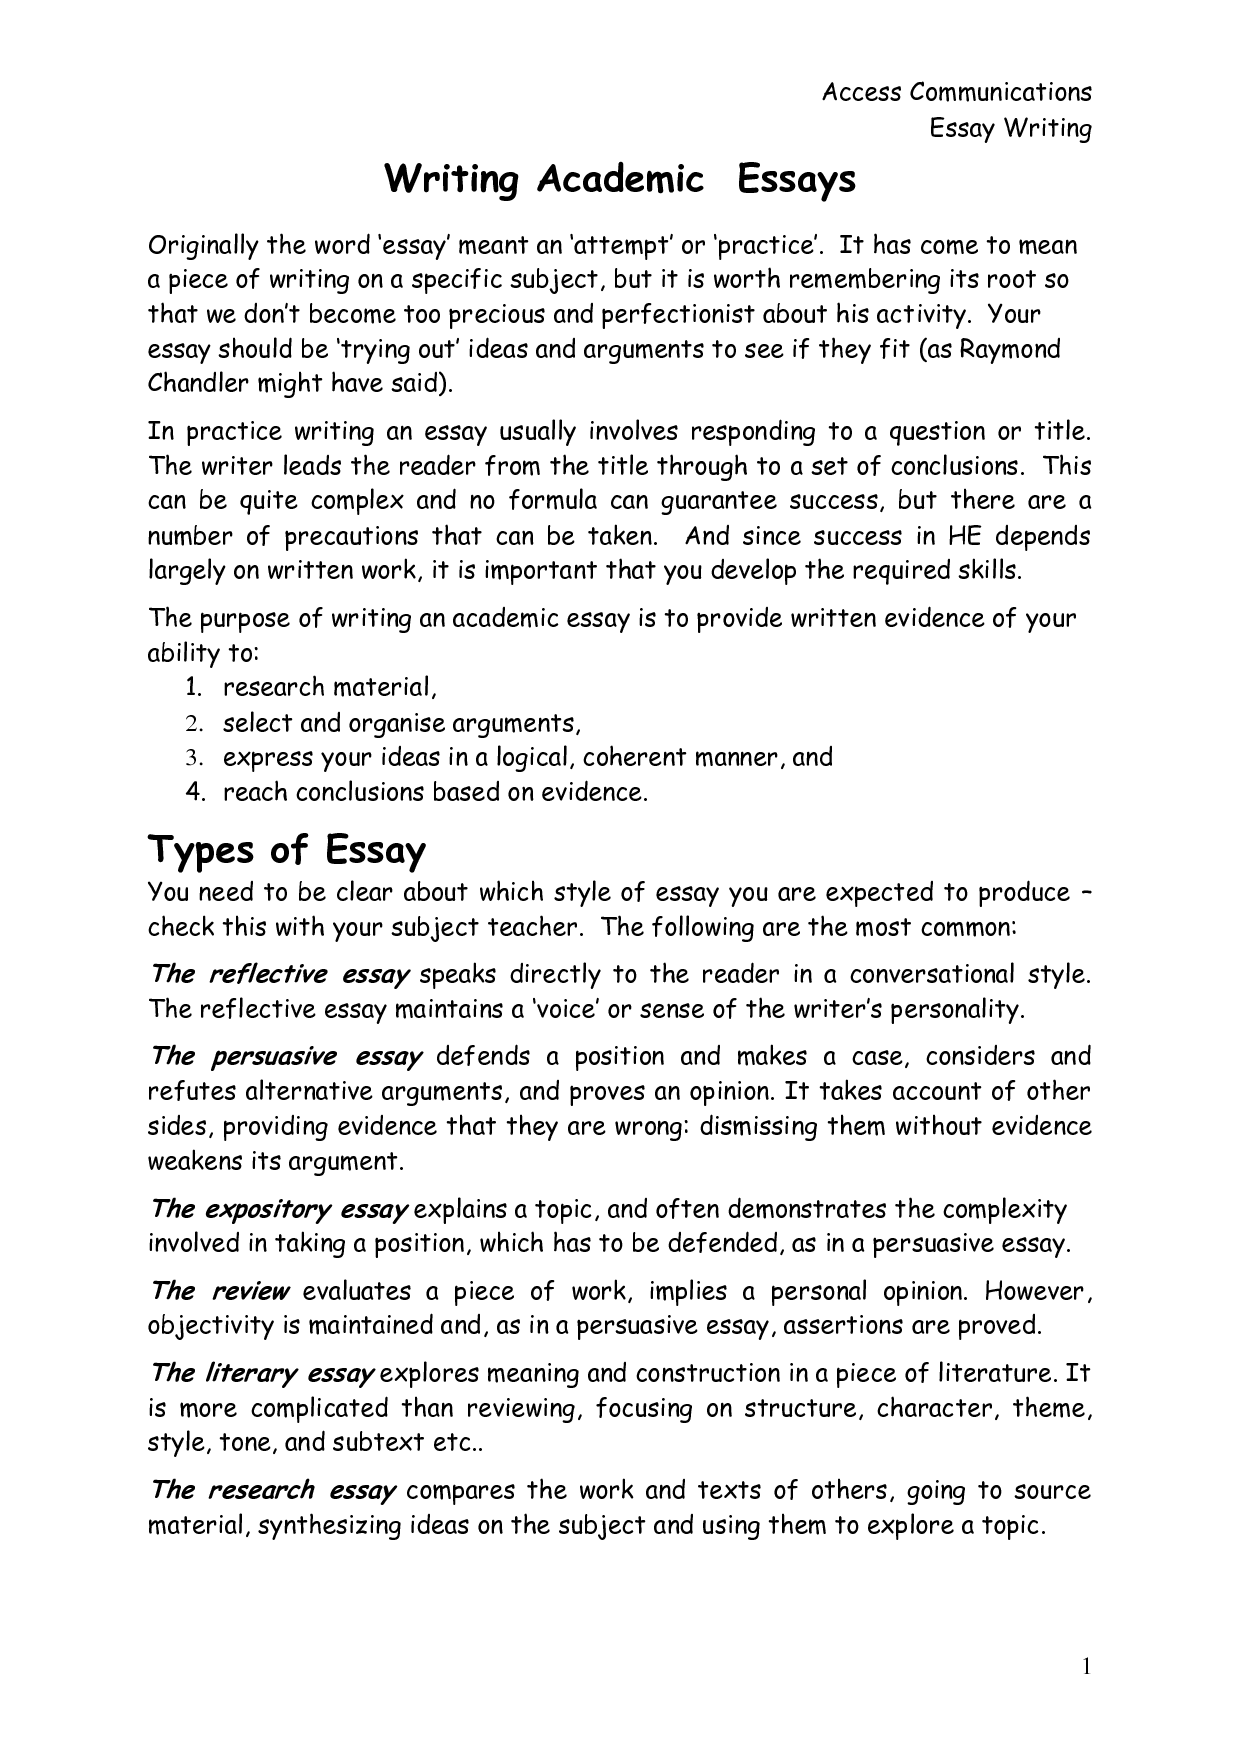 017 Essay Example Write For Me Amazing Uk My College Free Cheap Full